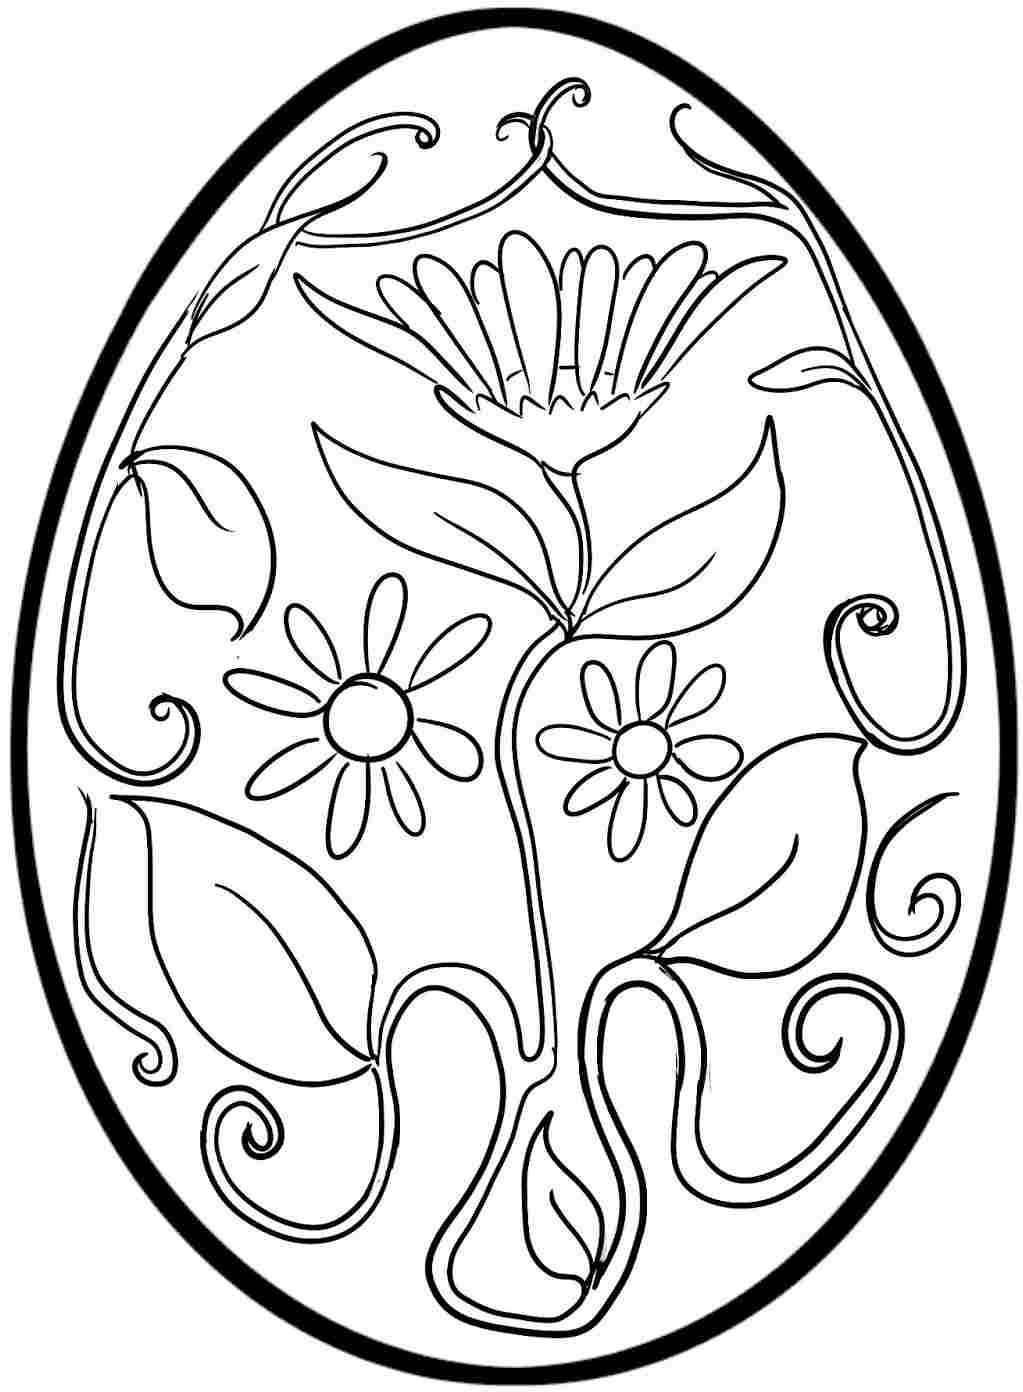 Easter Egg Colouring Pages Free For Kids & Boys